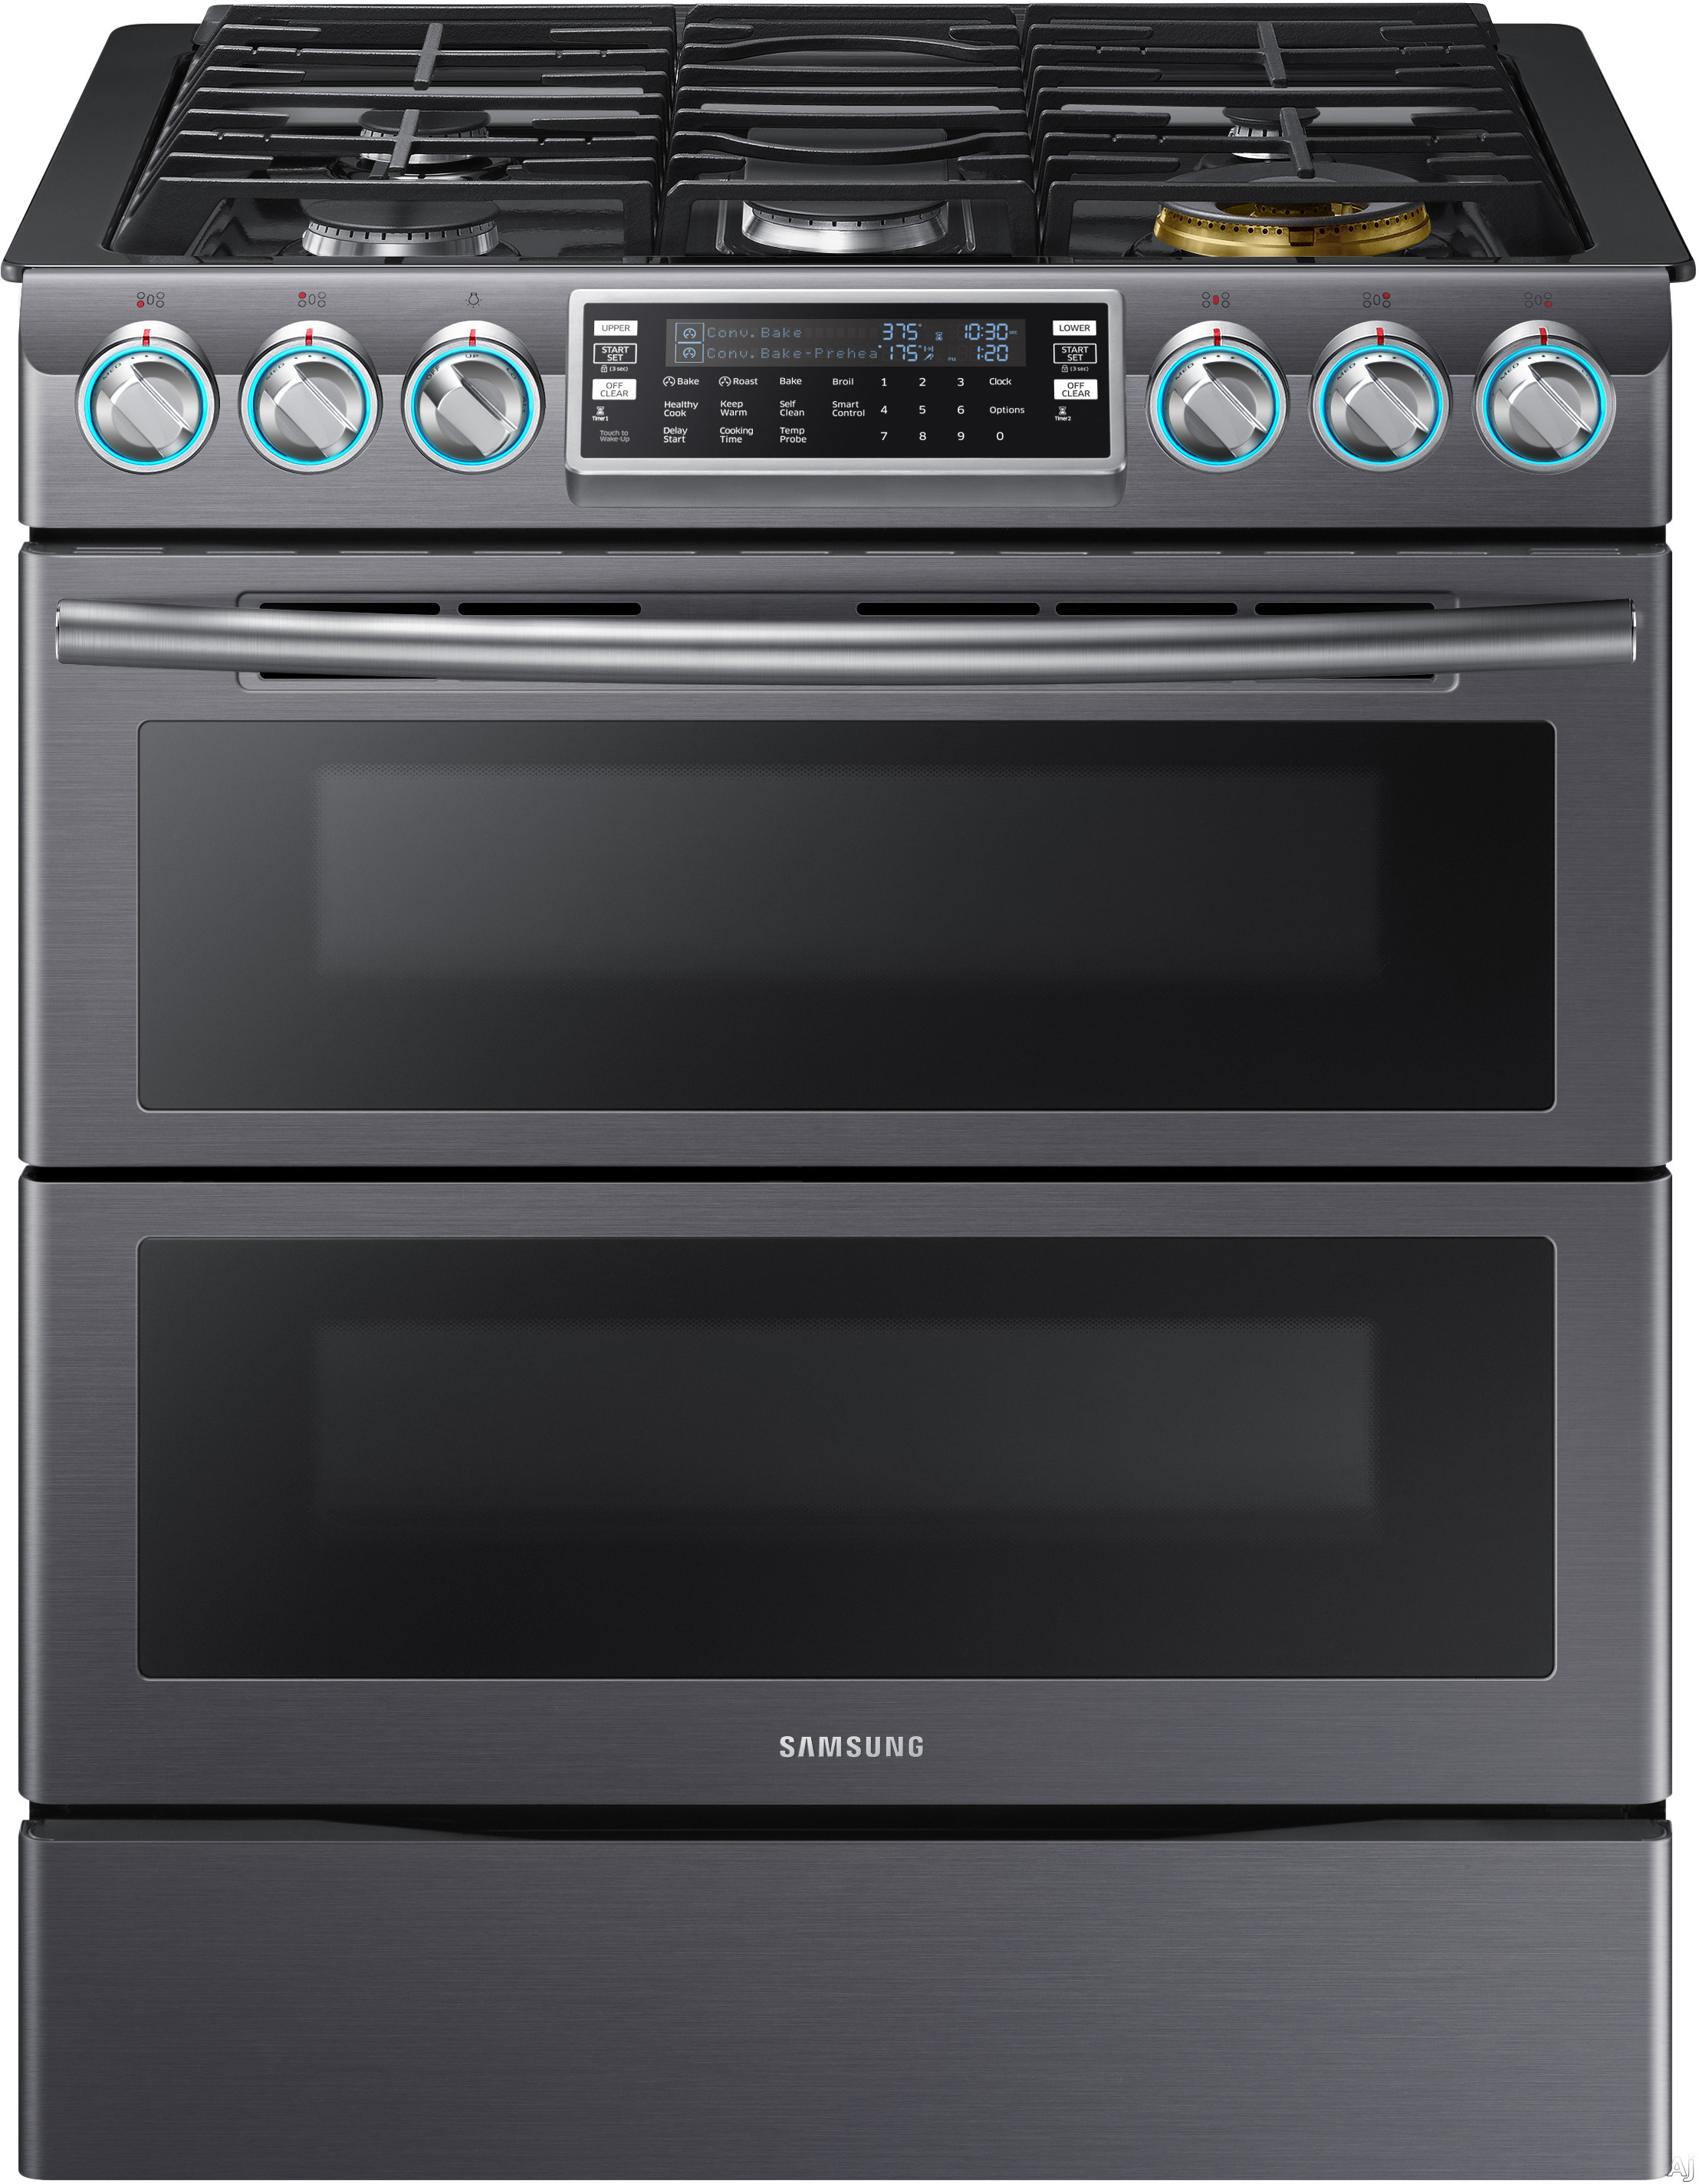 "Samsung NX58K9850 30 Inch Flex Duoâ""¢ Slide-In Gas Range with Dual Convection, Wi-Fi Connectivity, Soft Close Door, 5.8 cu. ft. Oven, 5 Sealed Burners, 22,000 BTU Power Burner, Blue LED Knobs, Storage Drawer and Self-Cleaning Mode"